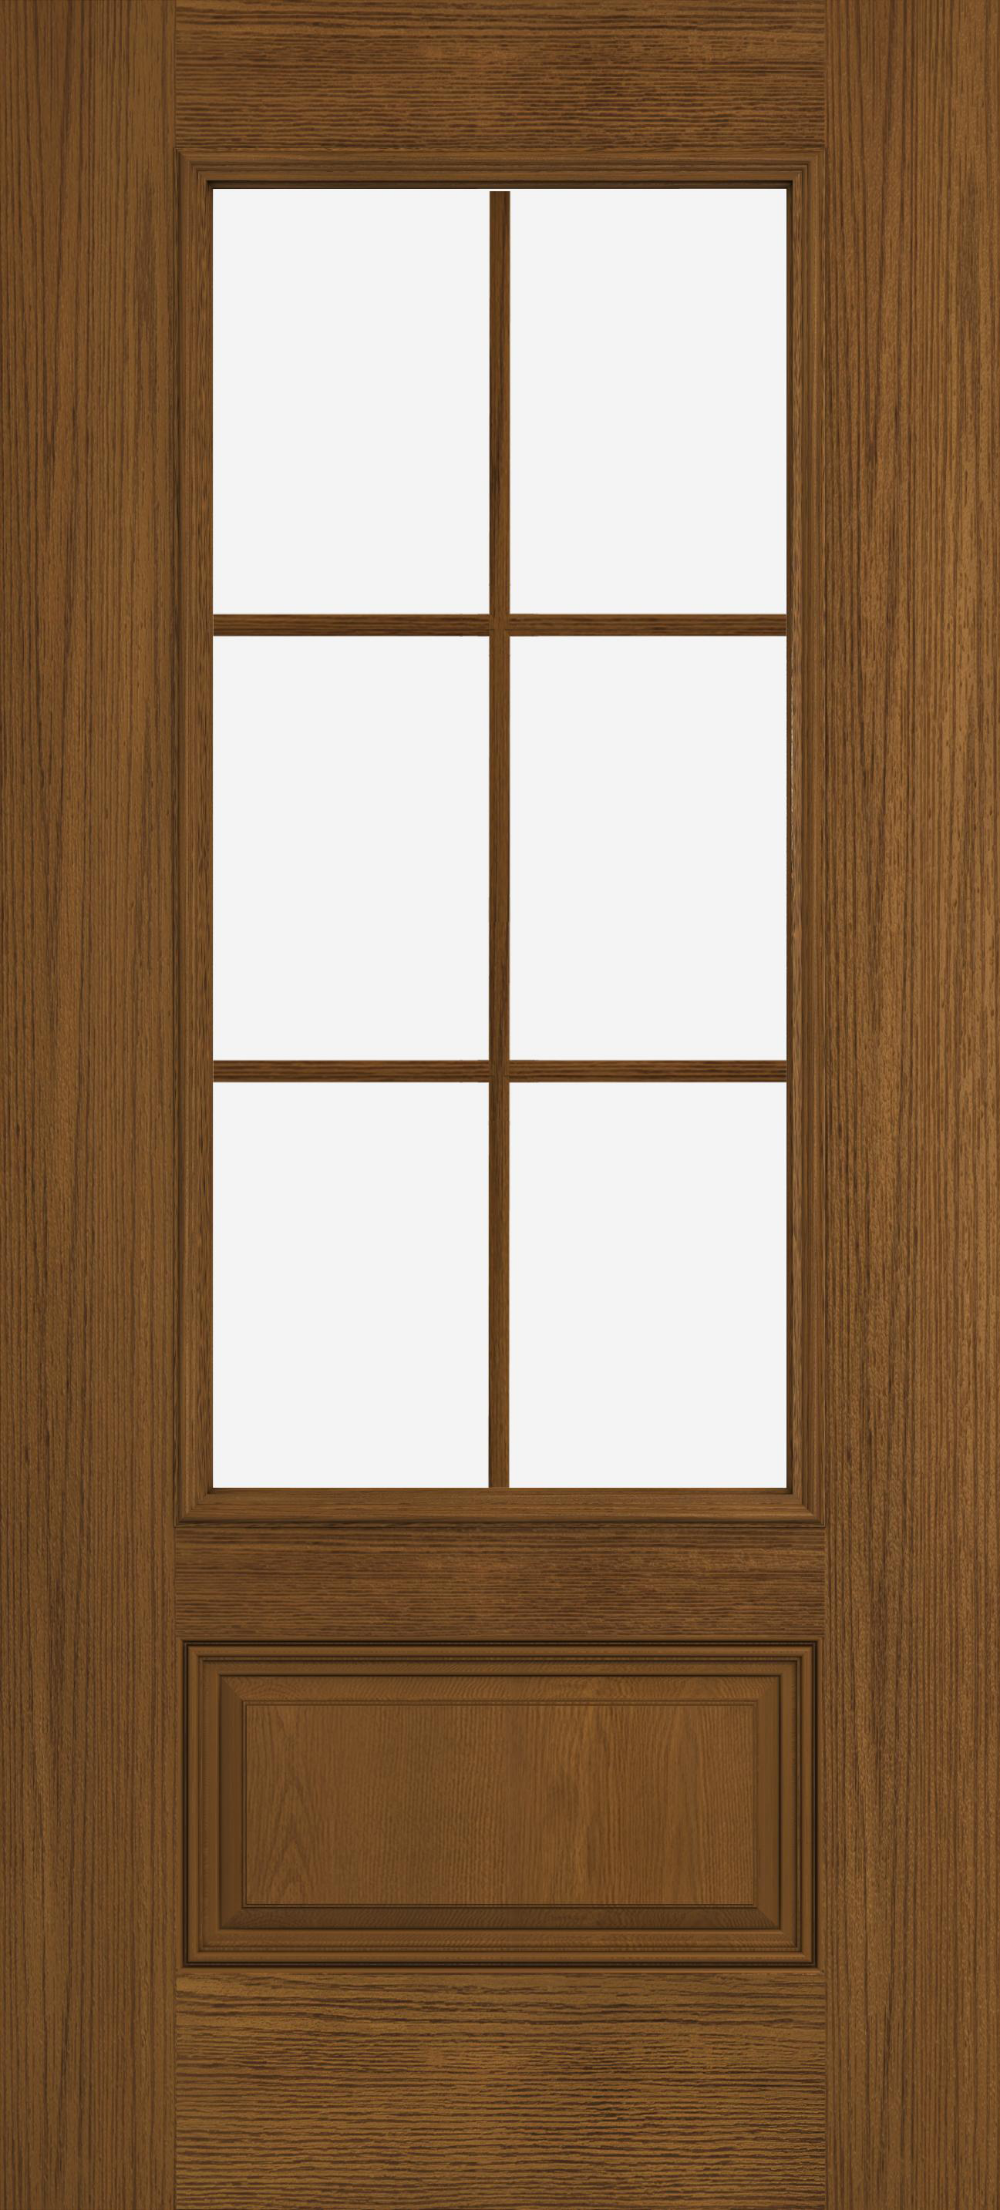 Design Pro Fiberglass Exterior Doors Oak 3 4 View 6 Light 1 Panel Glass Panel Reliable And E Fiberglass Exterior Doors Exterior Doors Energy Efficient Door